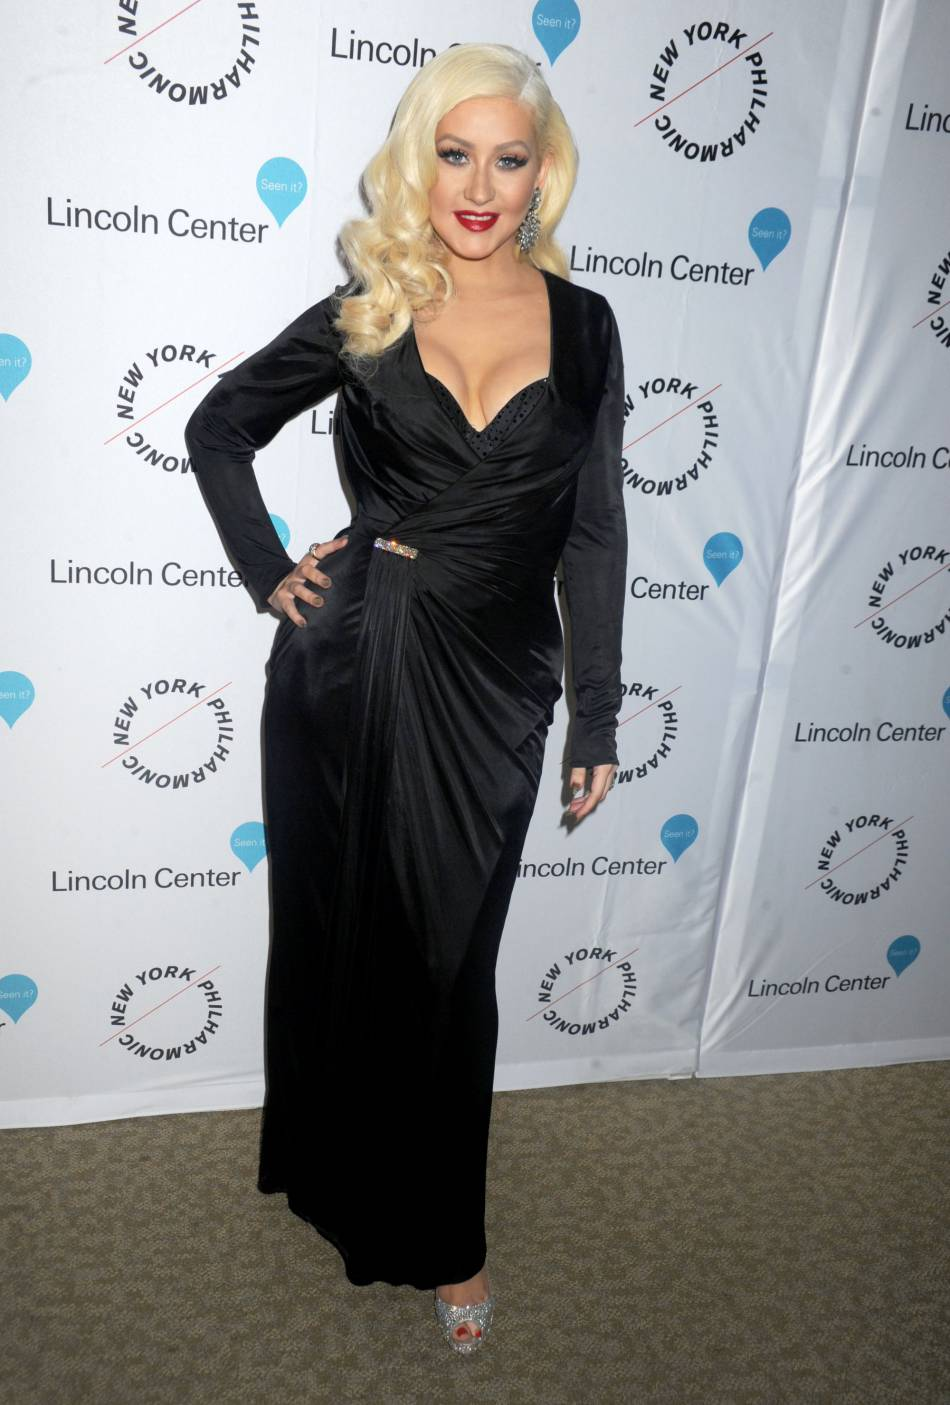 Christina Aguilera à la soirée Sinatra Voice for A Century au David Geffen Hall du Lincoln Center le 3 décembre 2015 à New York.